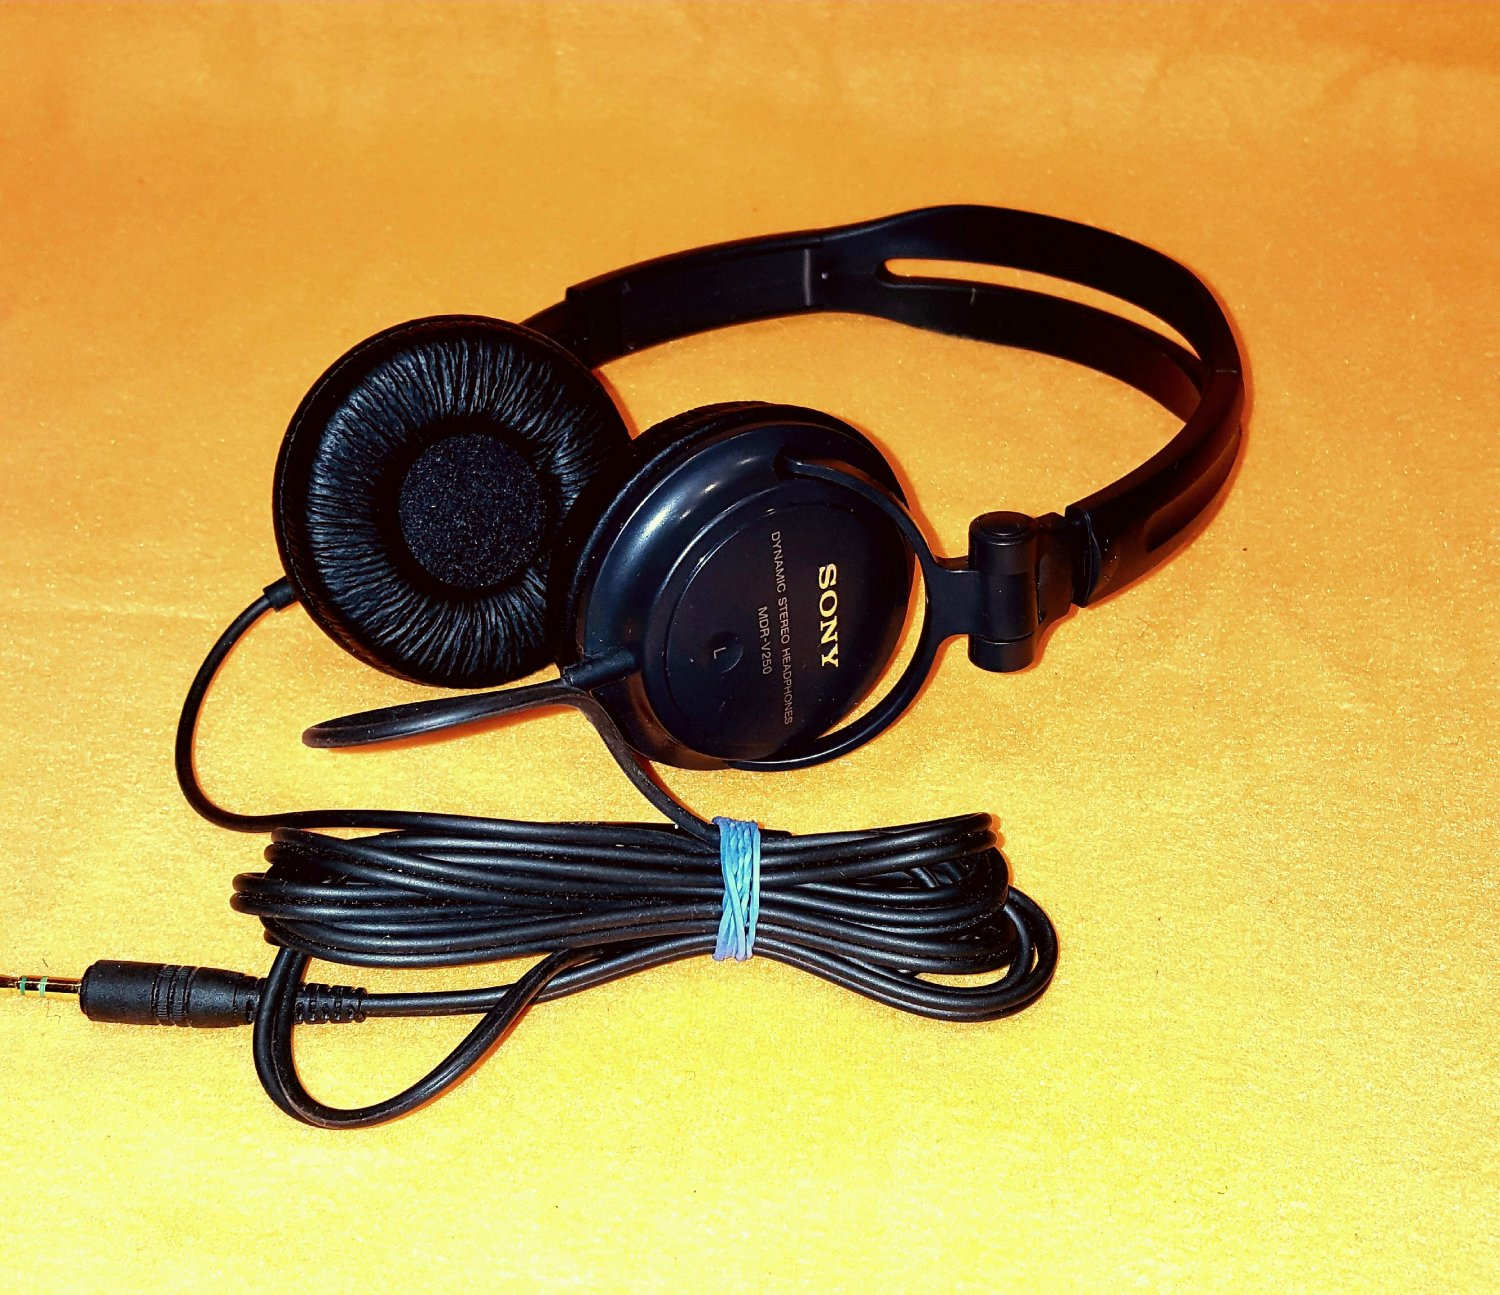 Sony MDR-V250 Monitor Series Headphones with In-line Volume Control